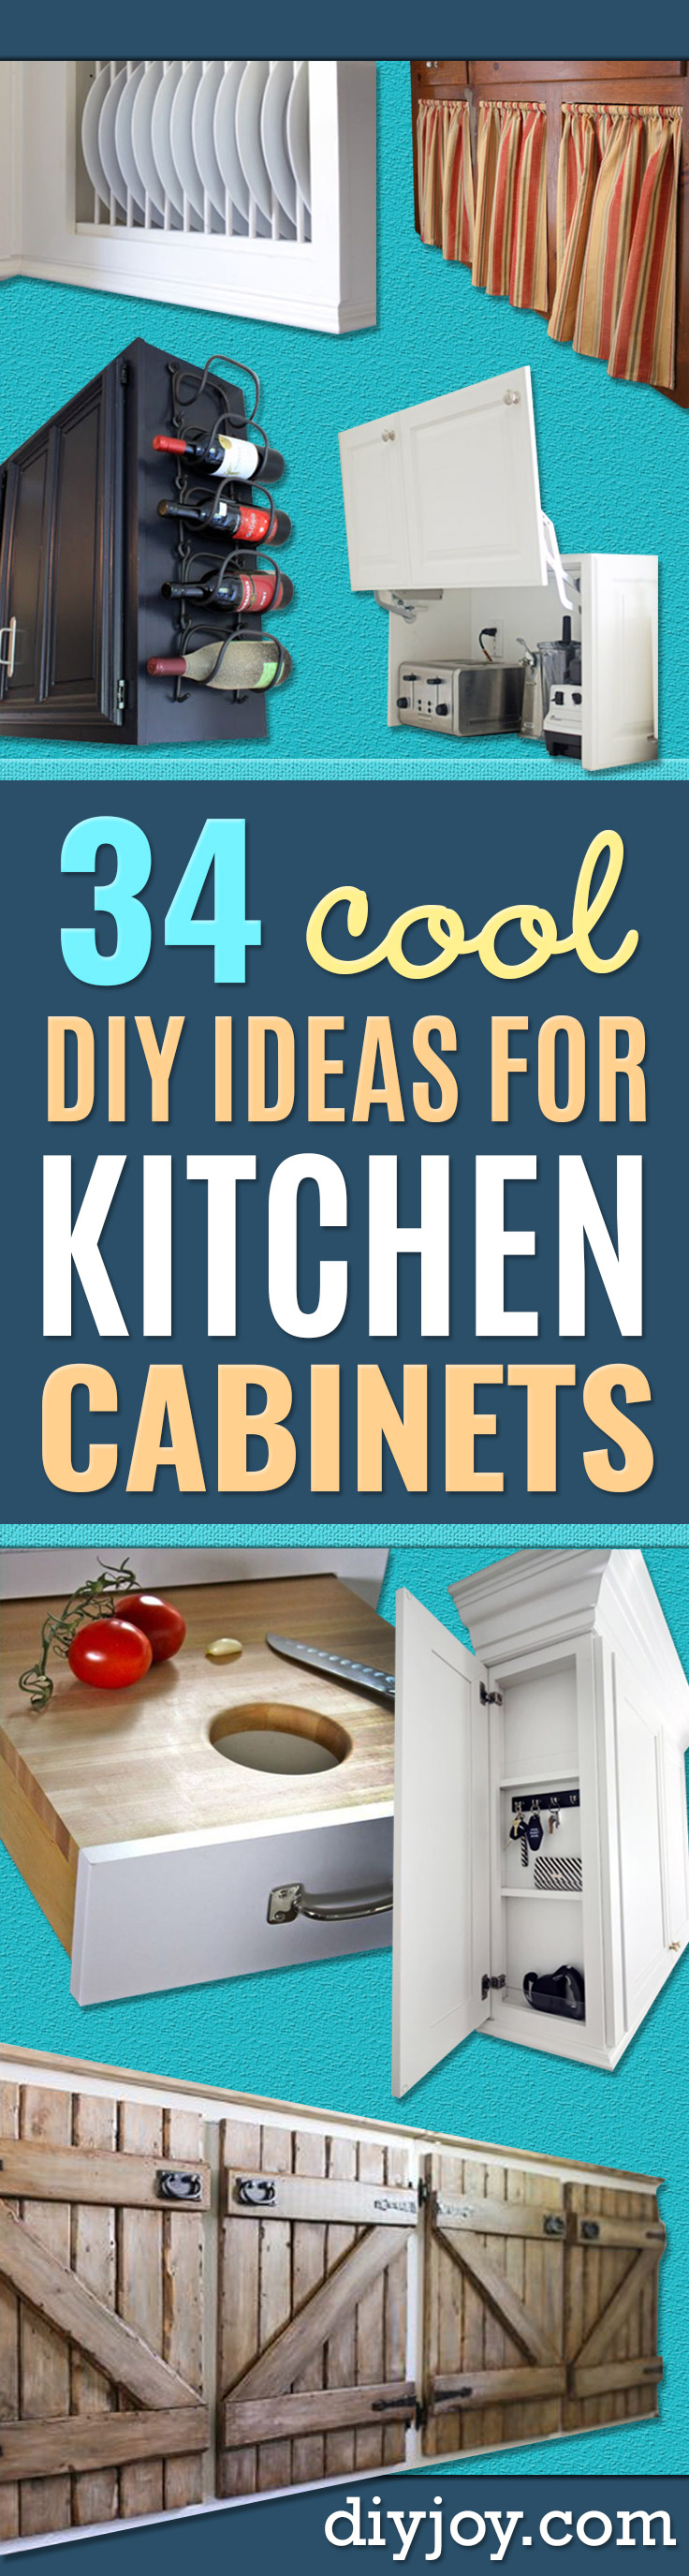 DIY Kitchen Cabinet Ideas - Makeover and Before and After - How To Build, Plan and Renovate Your Kitchen Cabinets - Painted, Cheap Refact, Free Plans, Rustic Decor, Farmhouse and Vintage Looks, Modern Design and Inexpensive Budget Friendly Projects http://diyjoy.com/diy-kitchen-cabinets